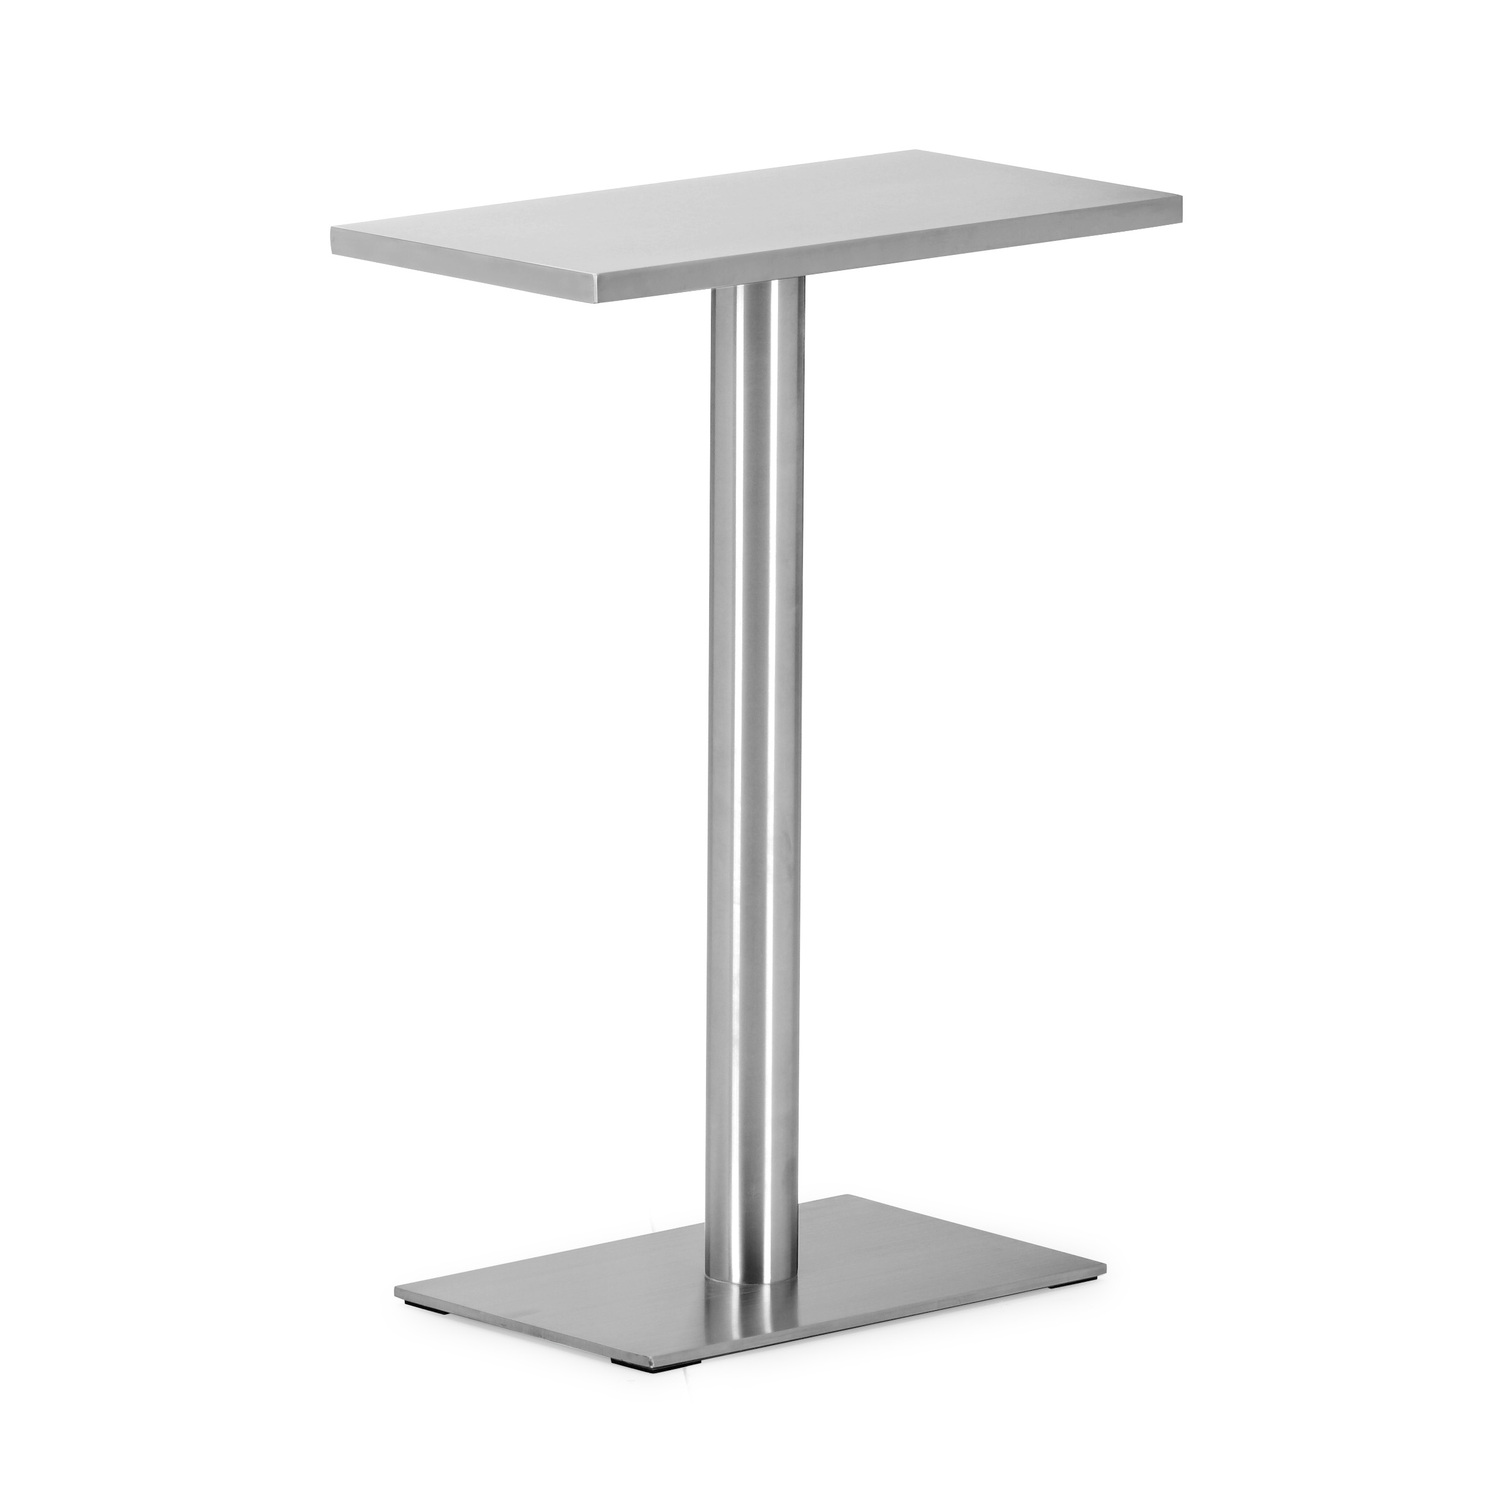 Zuo Modern Dawlish Console Table Stainless Steel By OJ